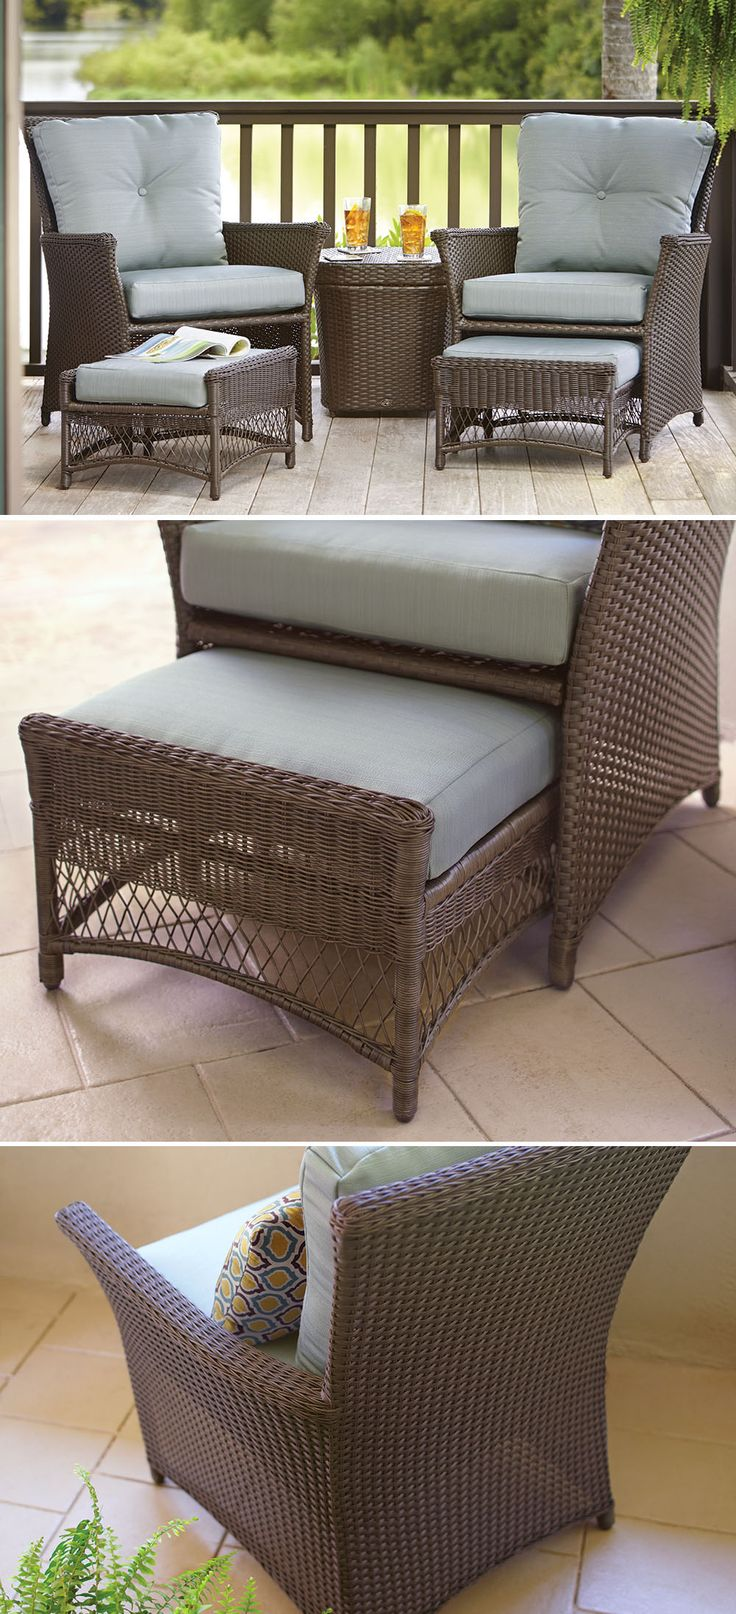 The 25+ best Small balcony furniture ideas on Pinterest ...